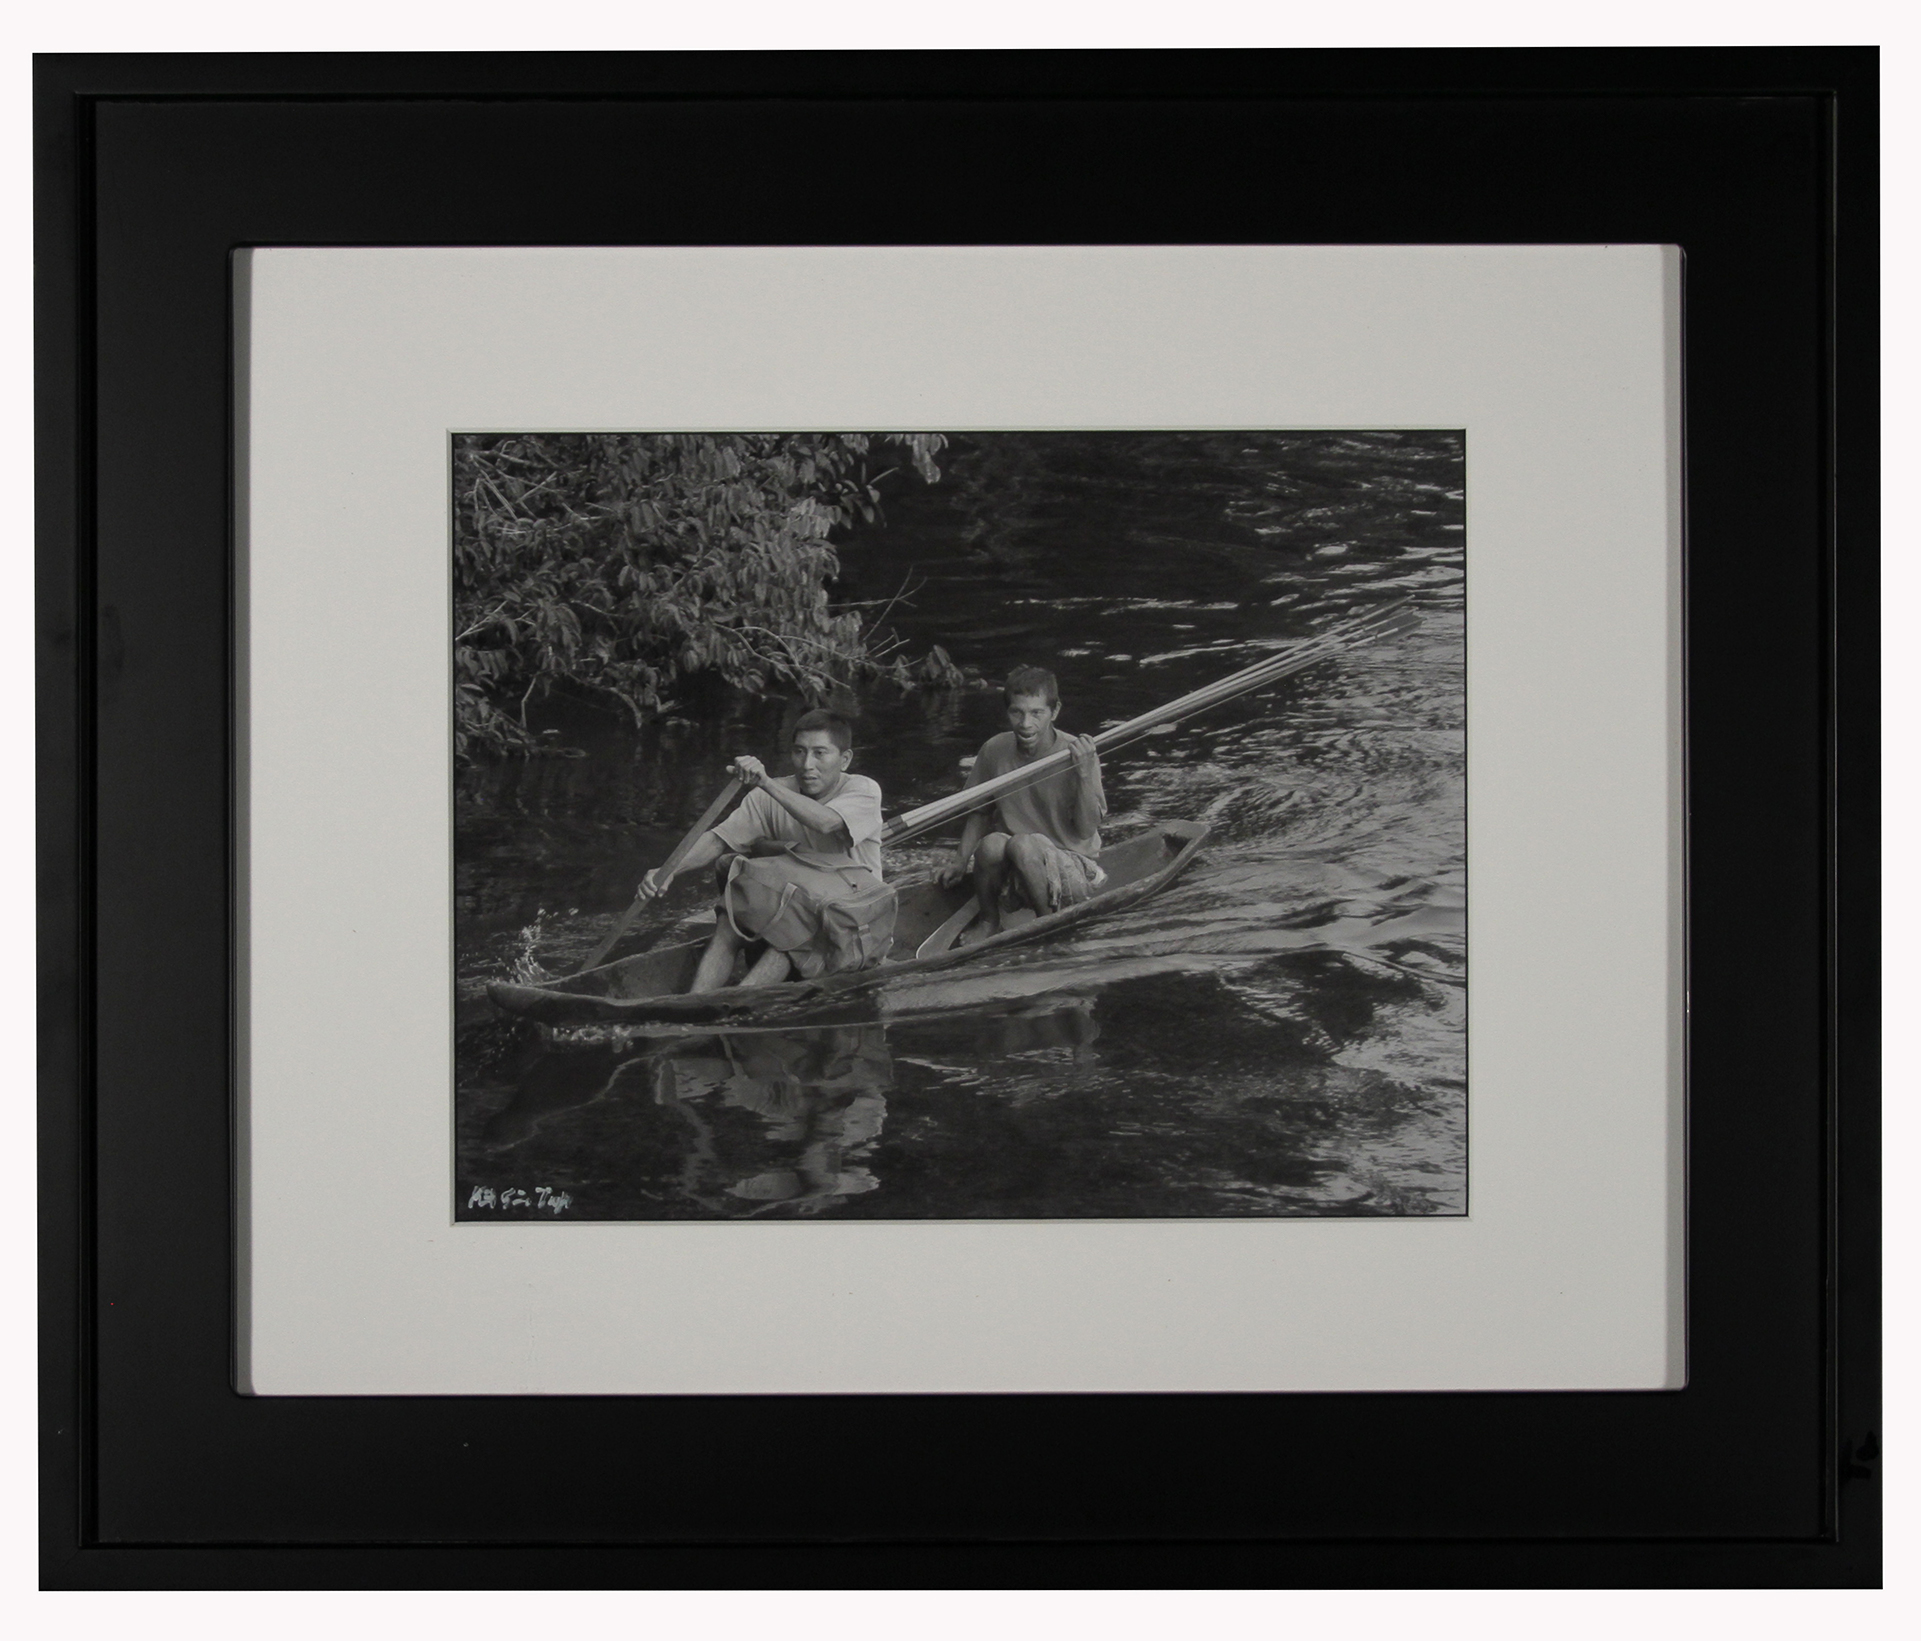 photo of two native men paddling a flat bottomed boat along a  calm river